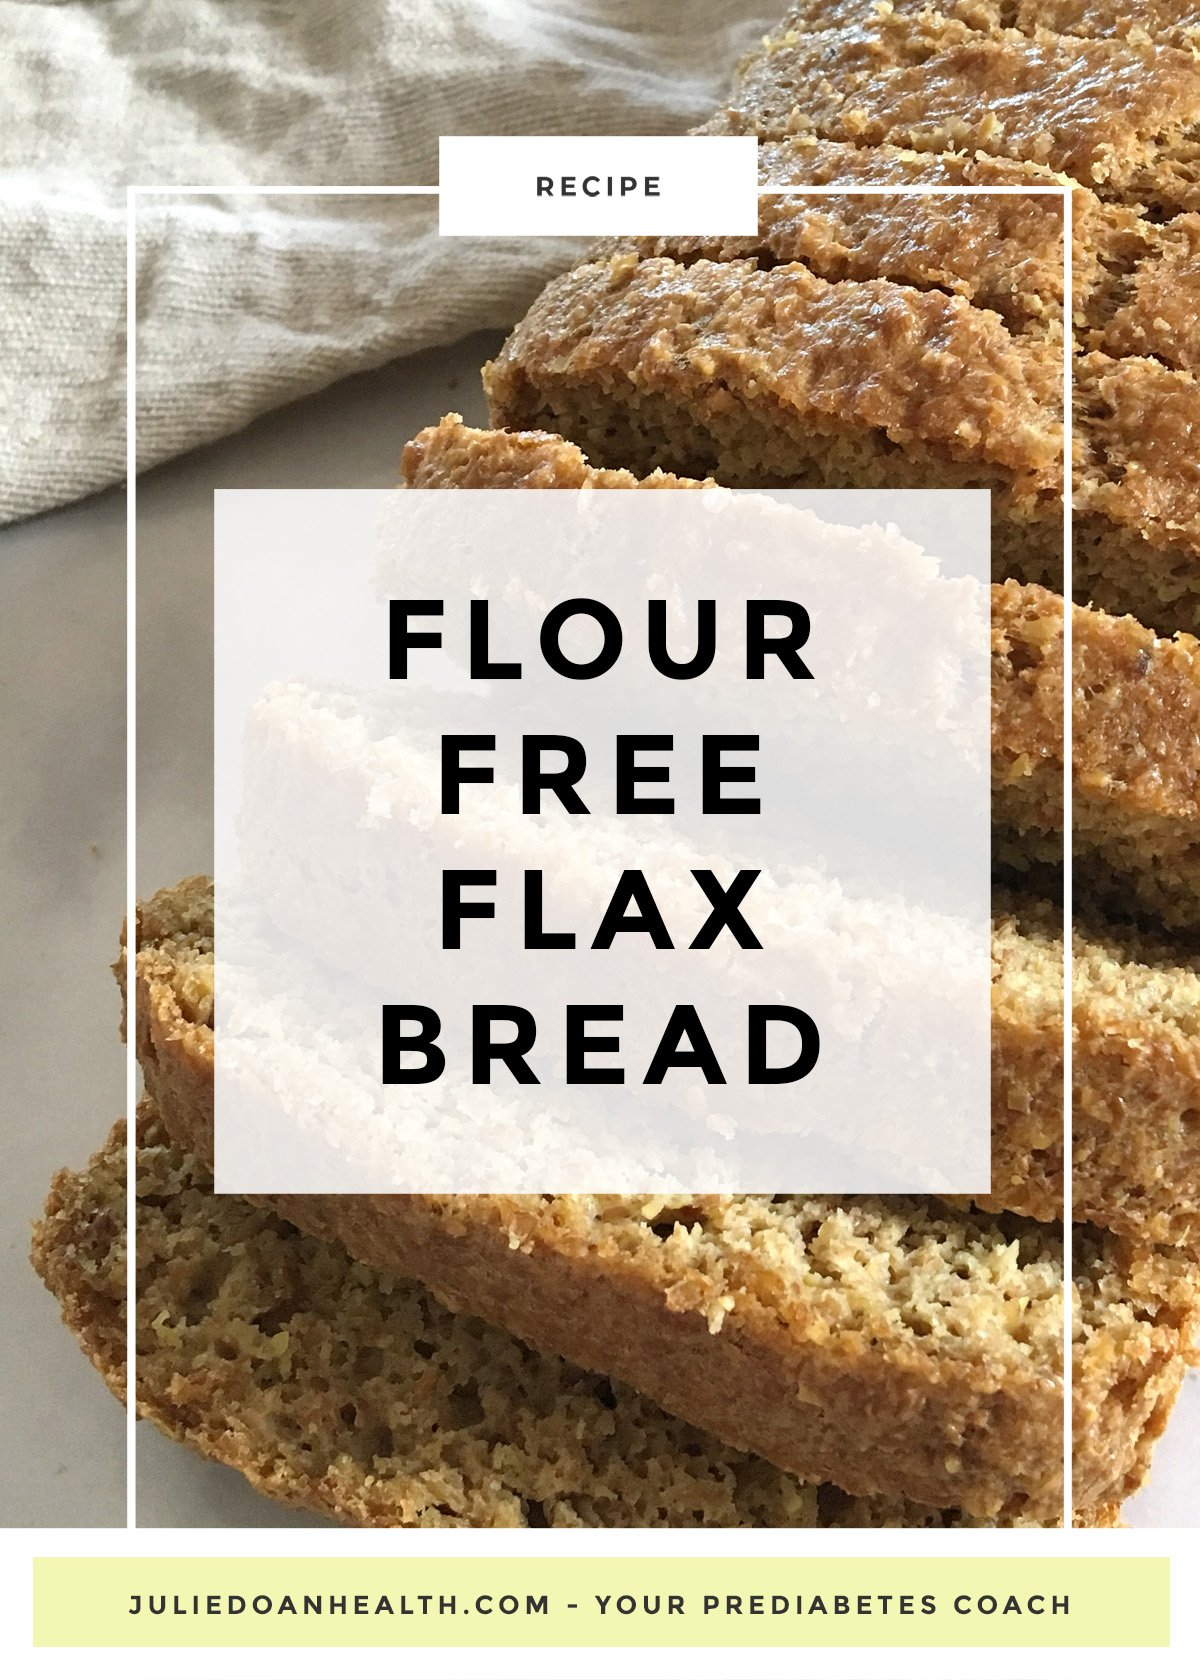 A delicious low-carb and flour-free flax seed bread recipe that<s prefect for people with prediabetes and diabetes.